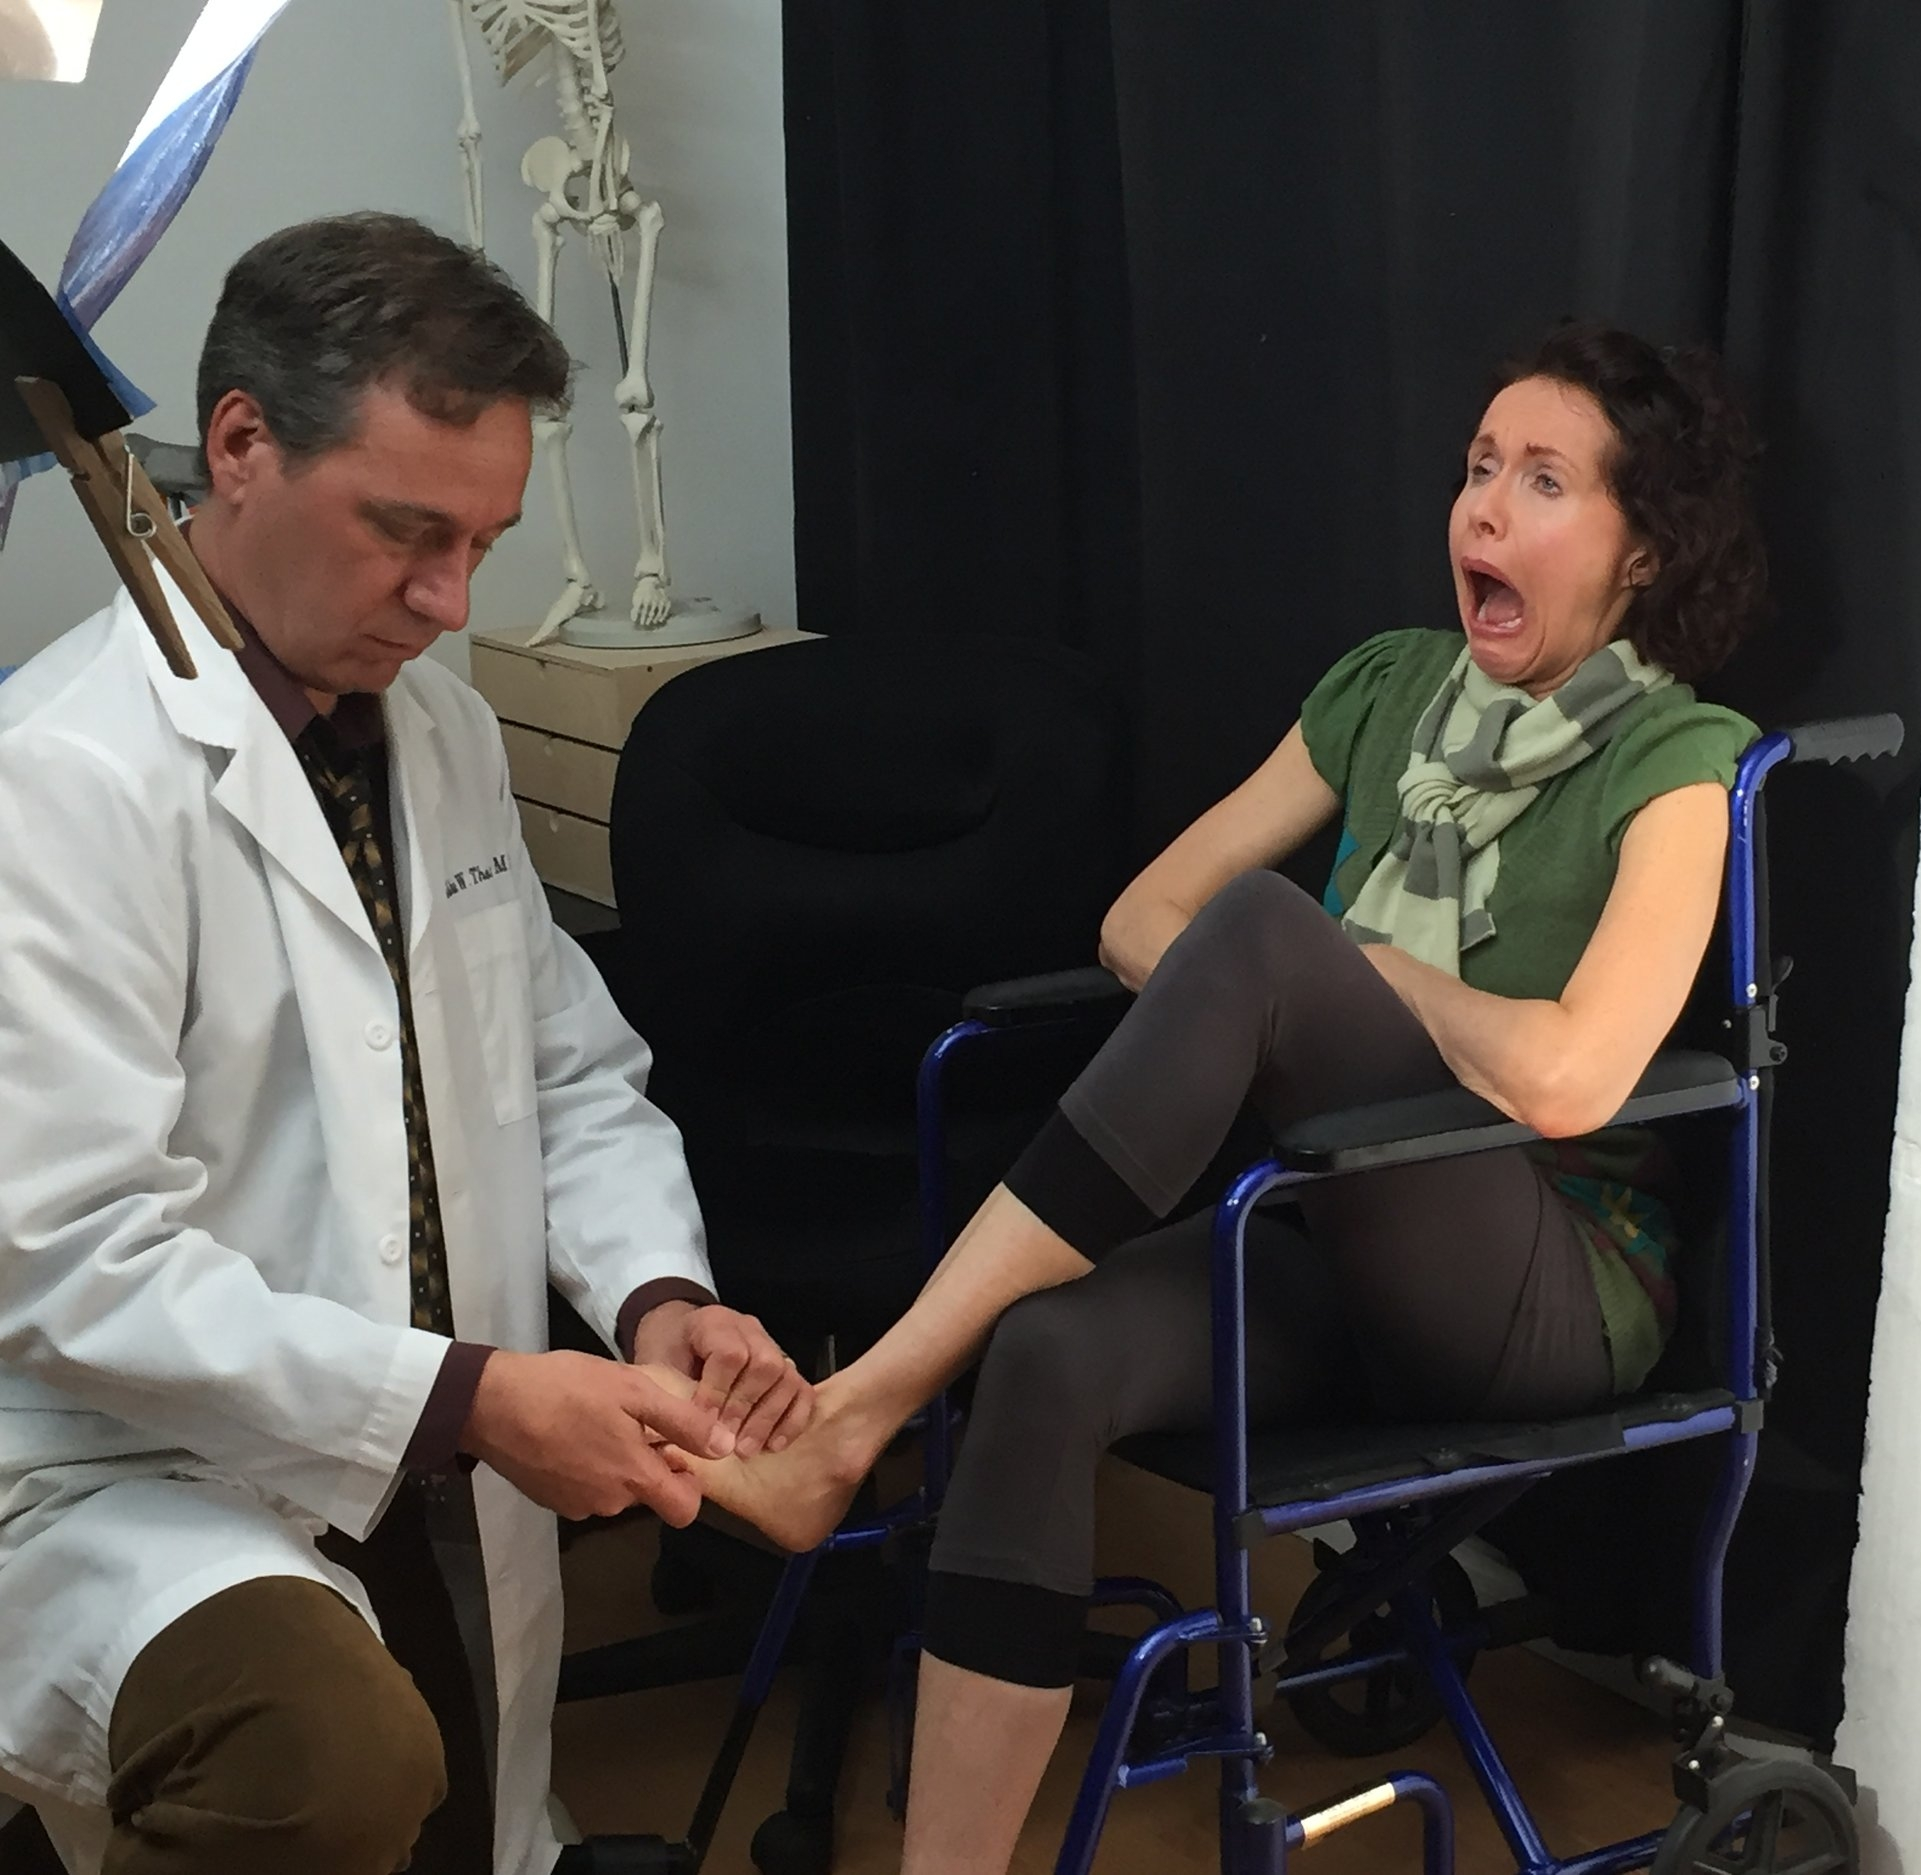 Left to Right: Demetrio James as Doctor resetting Mac's (Maura Knowles's) toes.